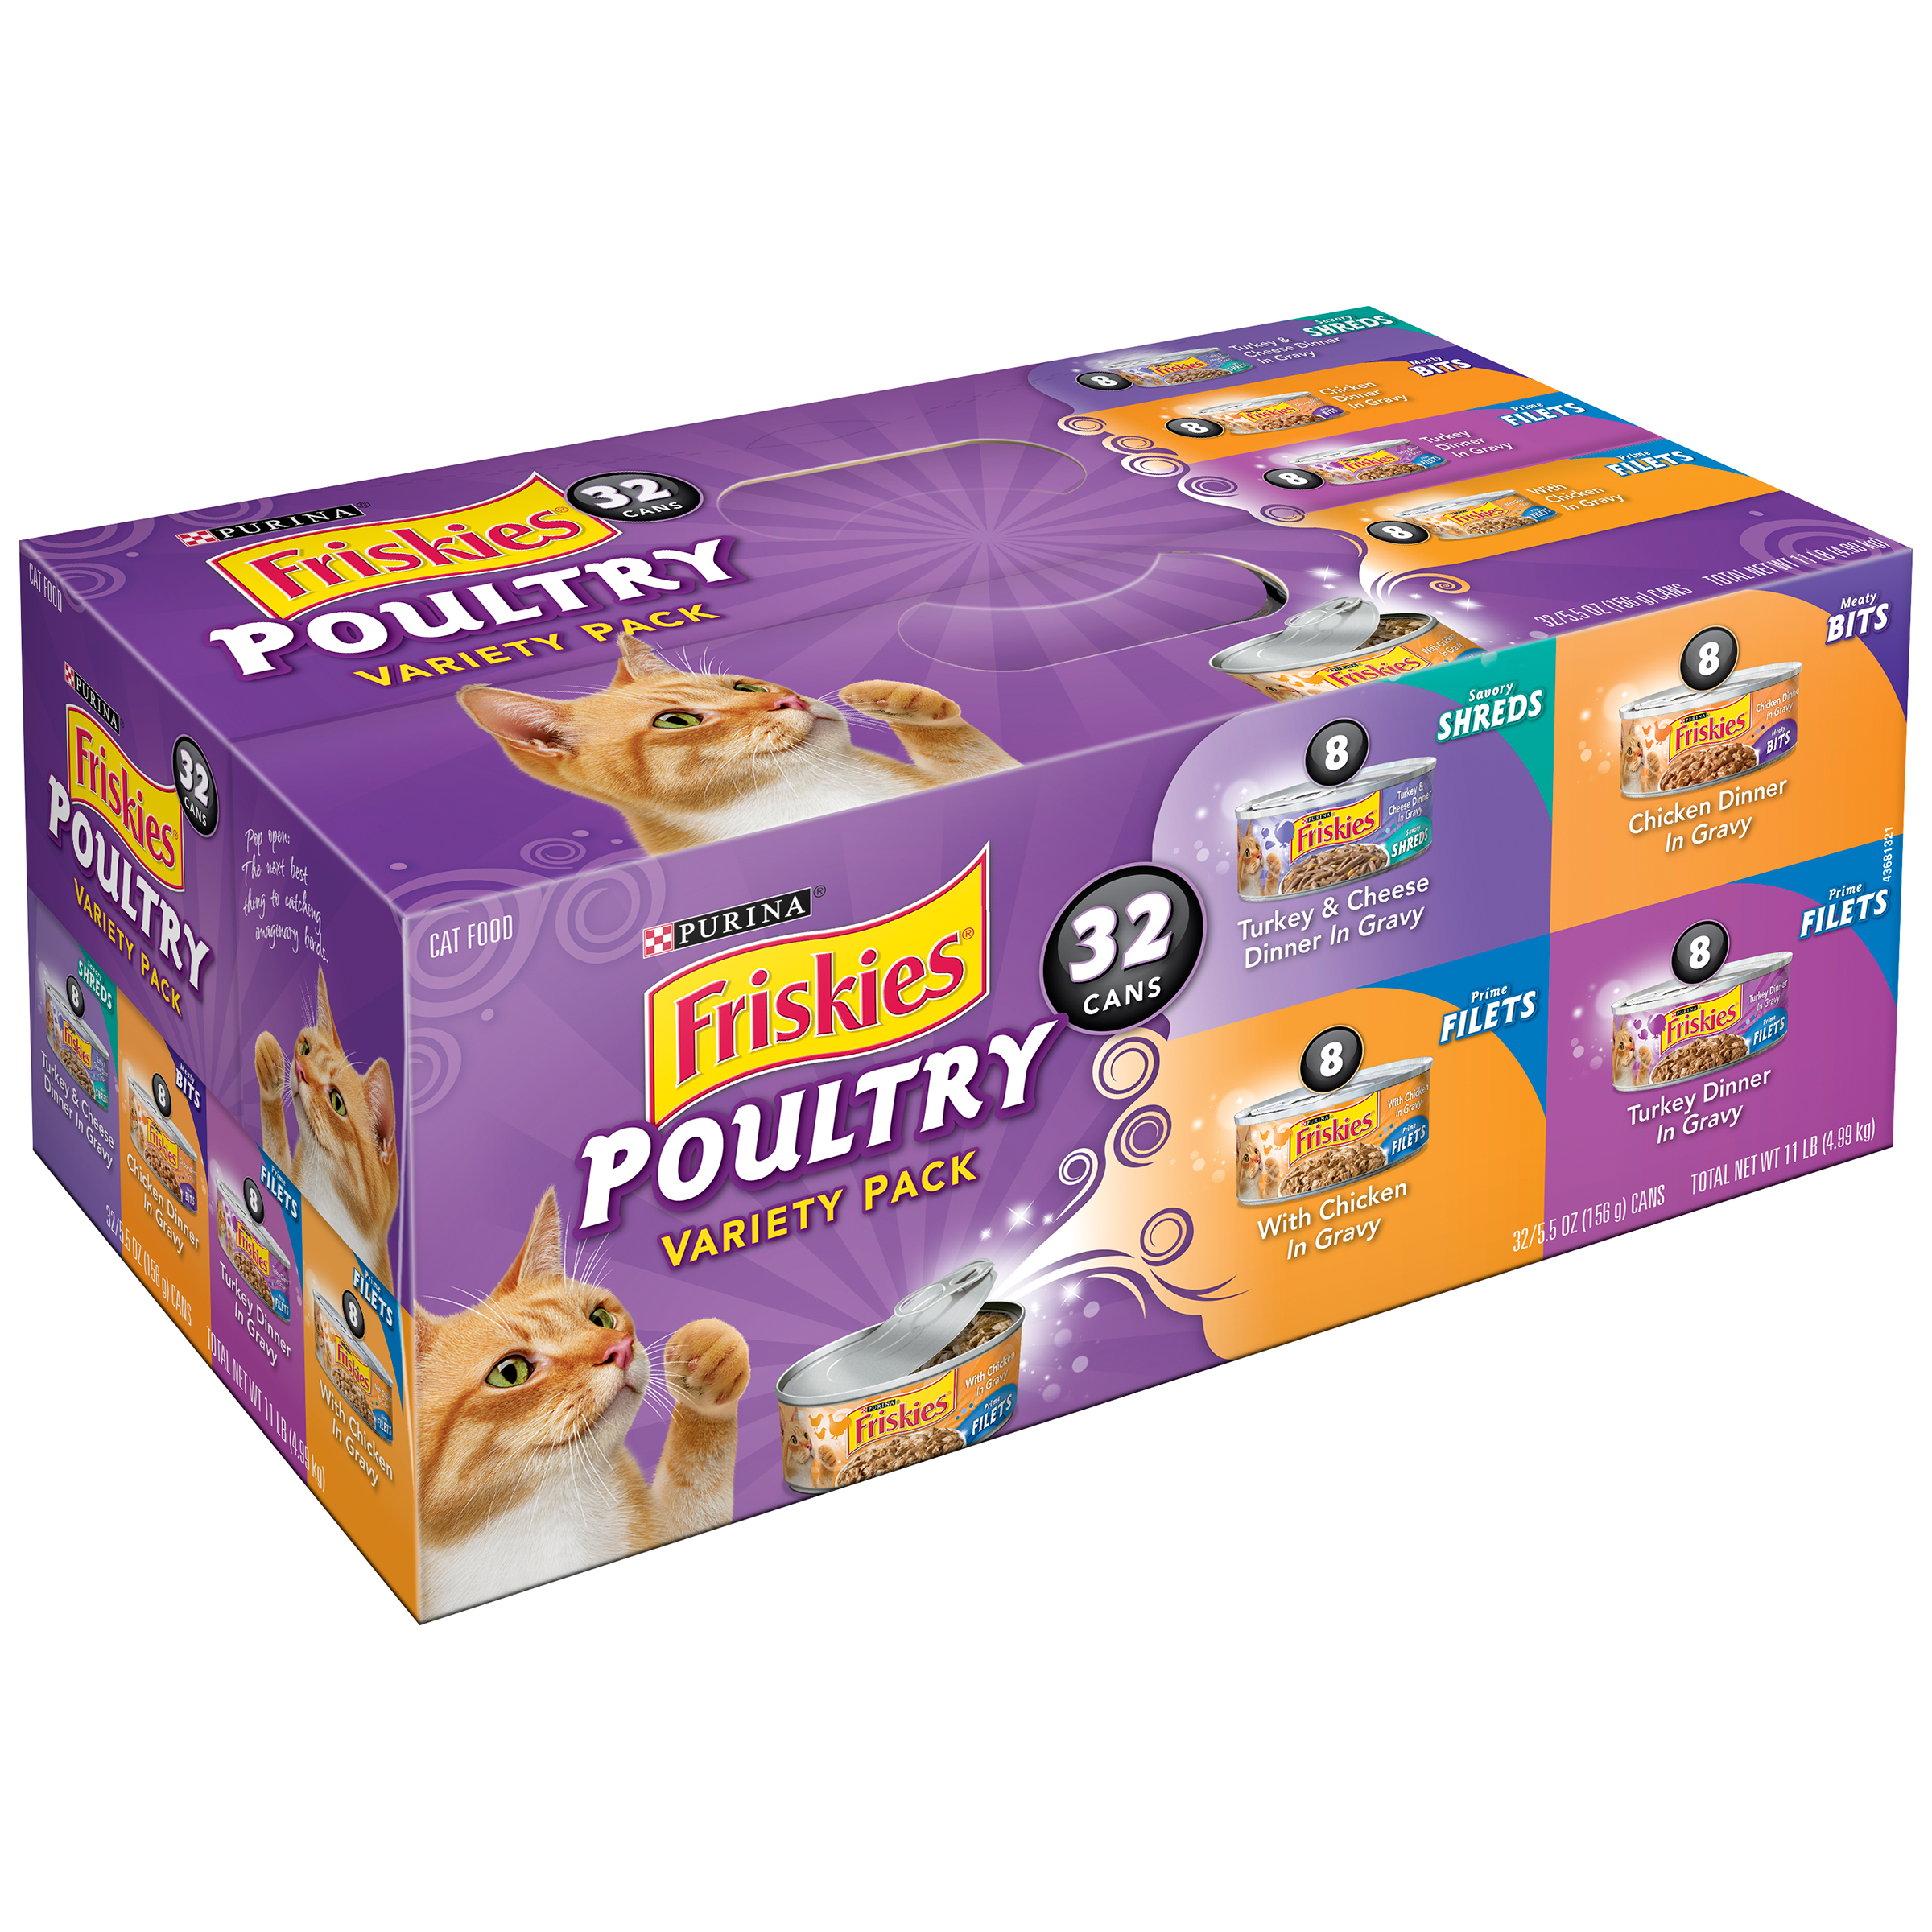 Purina Friskies Poultry Variety Pack Cat Food 32-5.5 oz. Cans